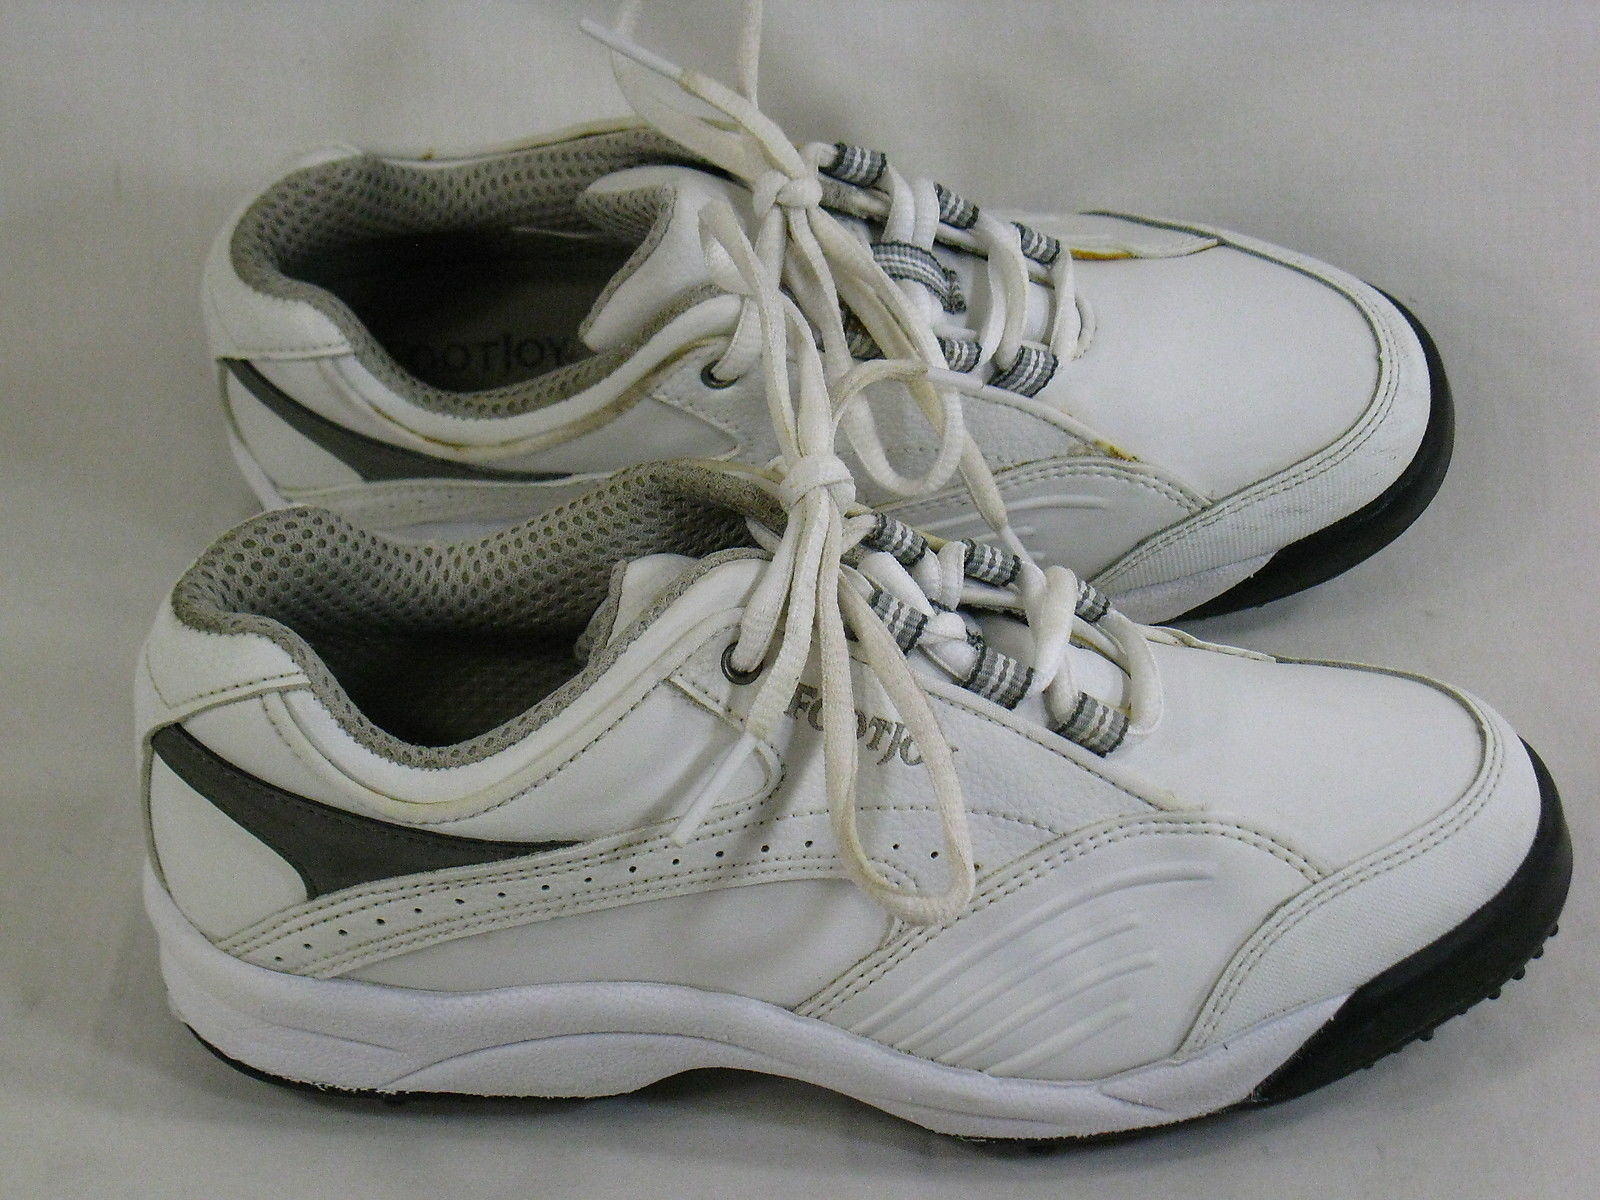 Footjoy Greenjoys White Leather Golf Shoes Size 6 M US Soft Spikes Excellent